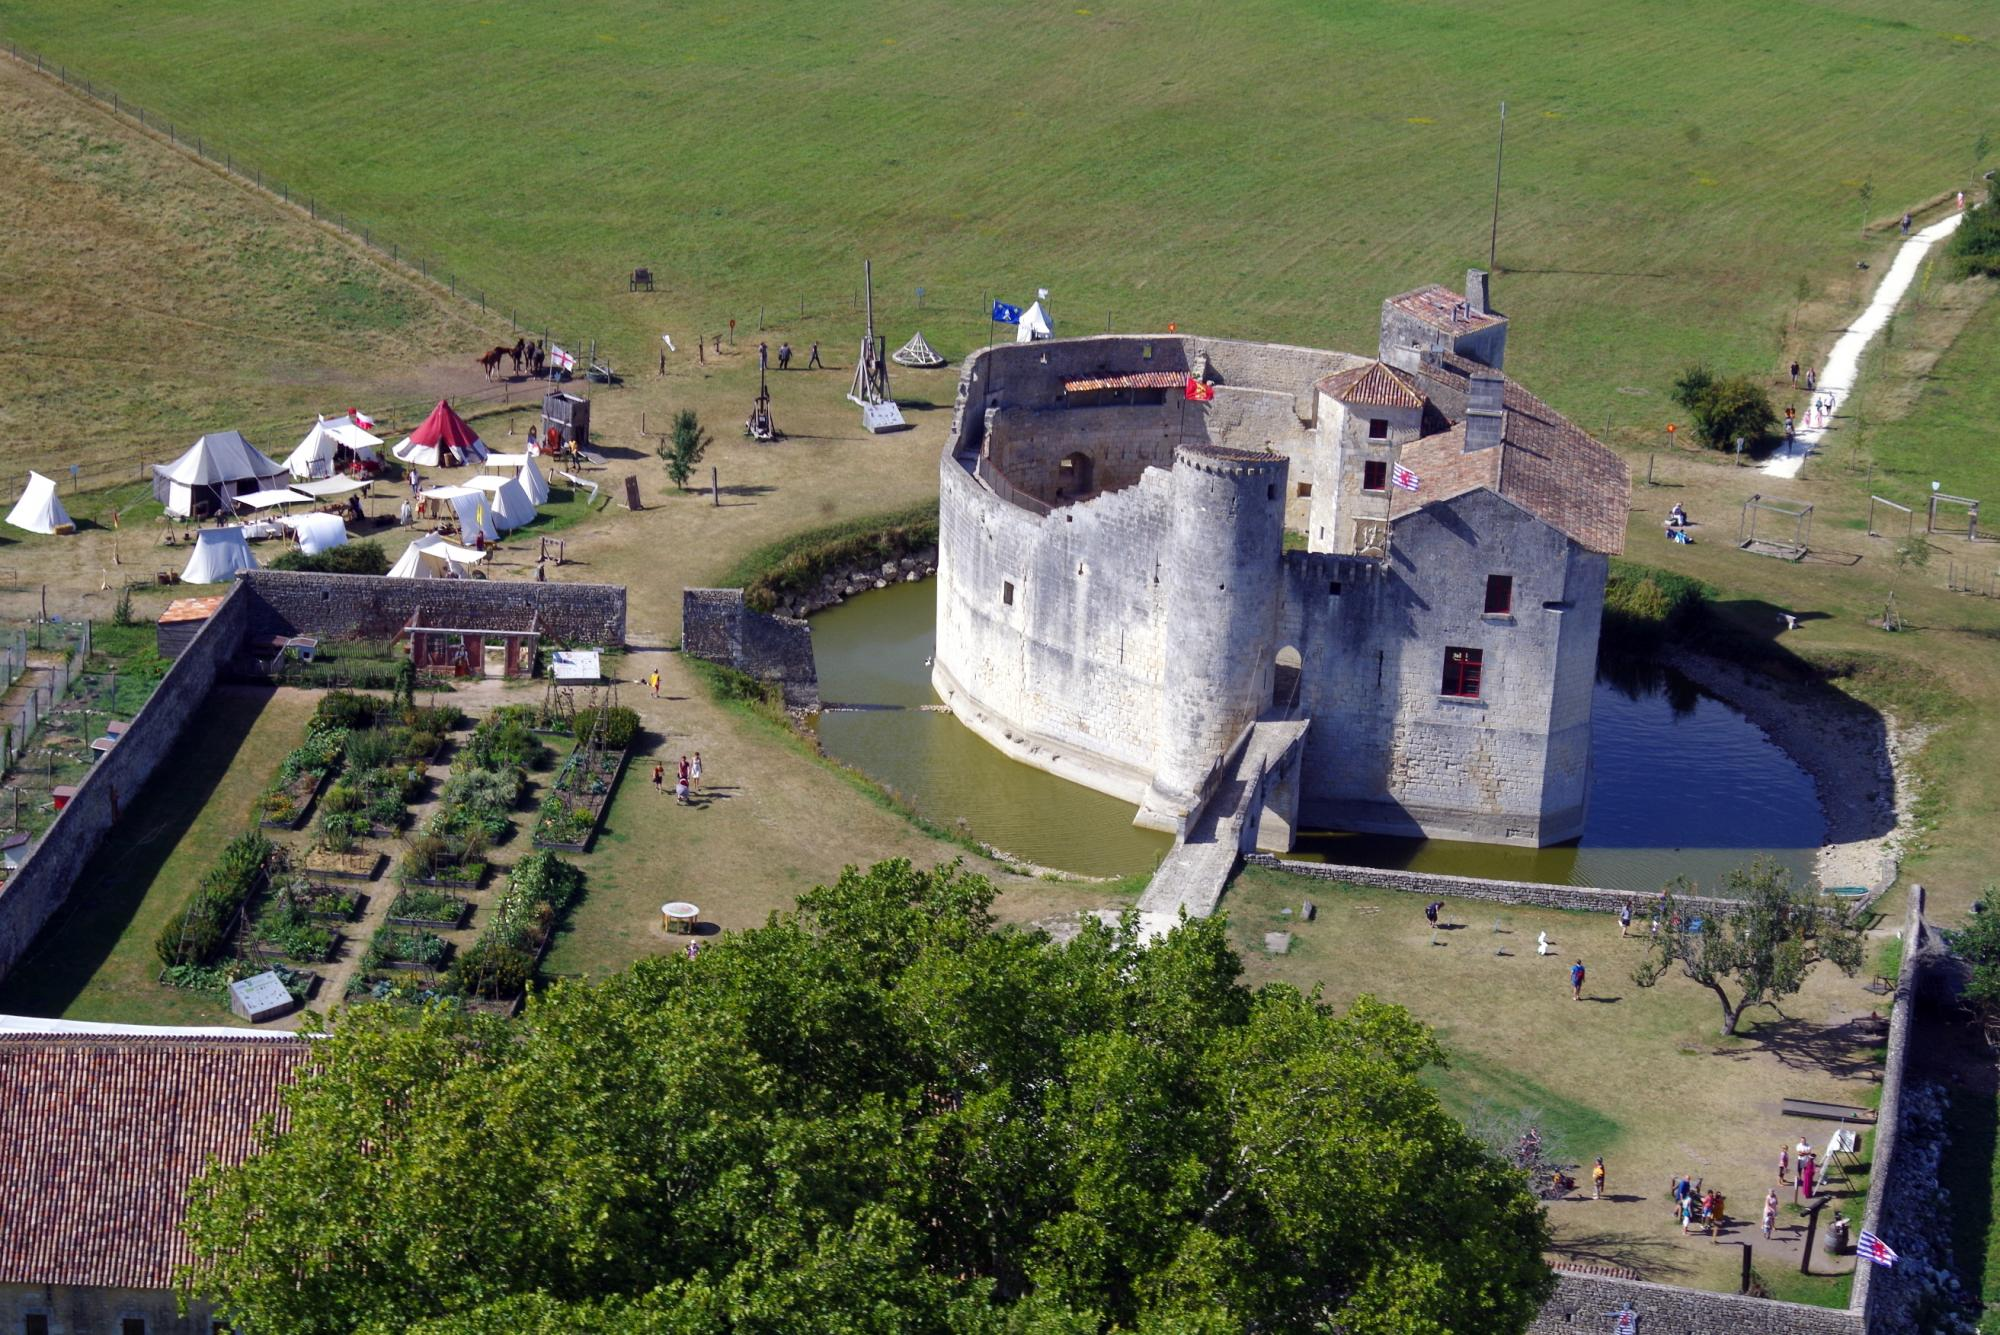 Tourist activities in Charente-Maritime : visits fortified castle and medieval theme park close to Rochefort